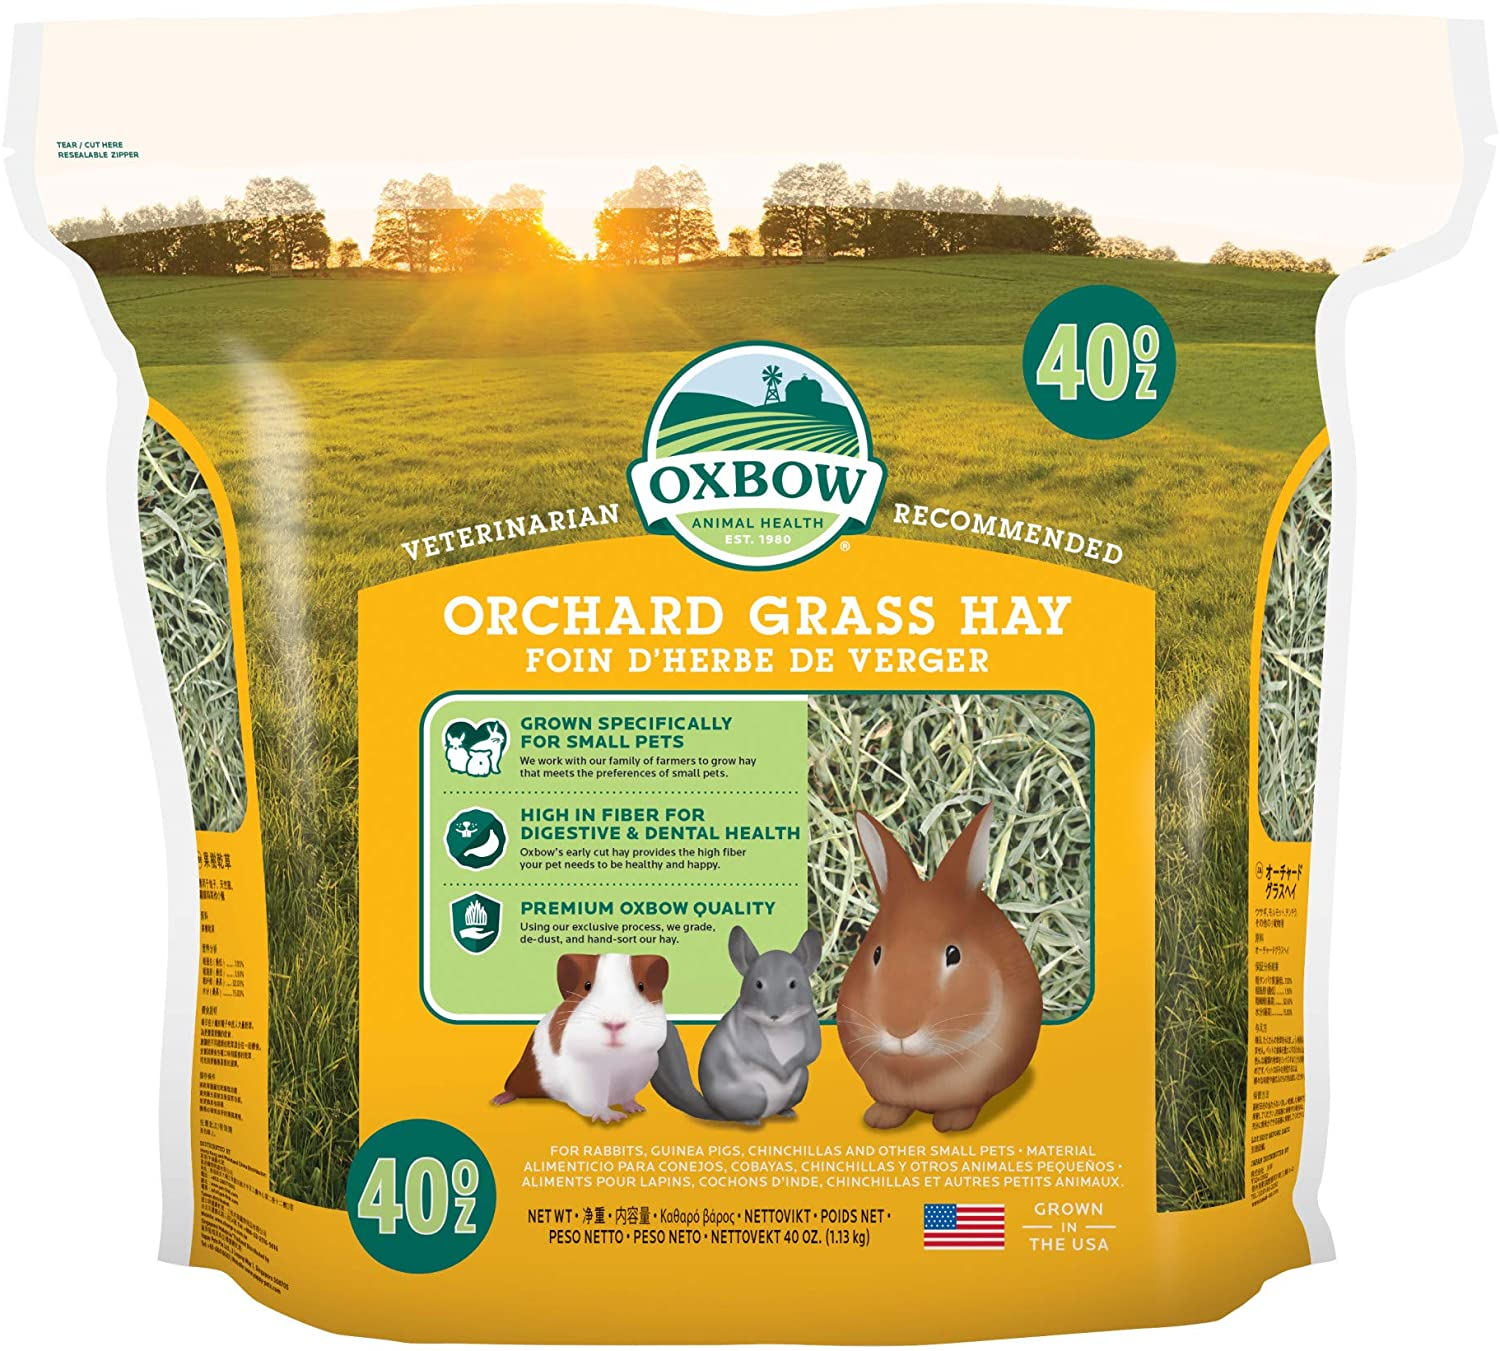 Oxbow Animal Health Orchard Grass Hay - All Natural Grass Hay for Chinchillas, Rabbits, Guinea Pigs, Hamsters & Gerbils - 40 oz.